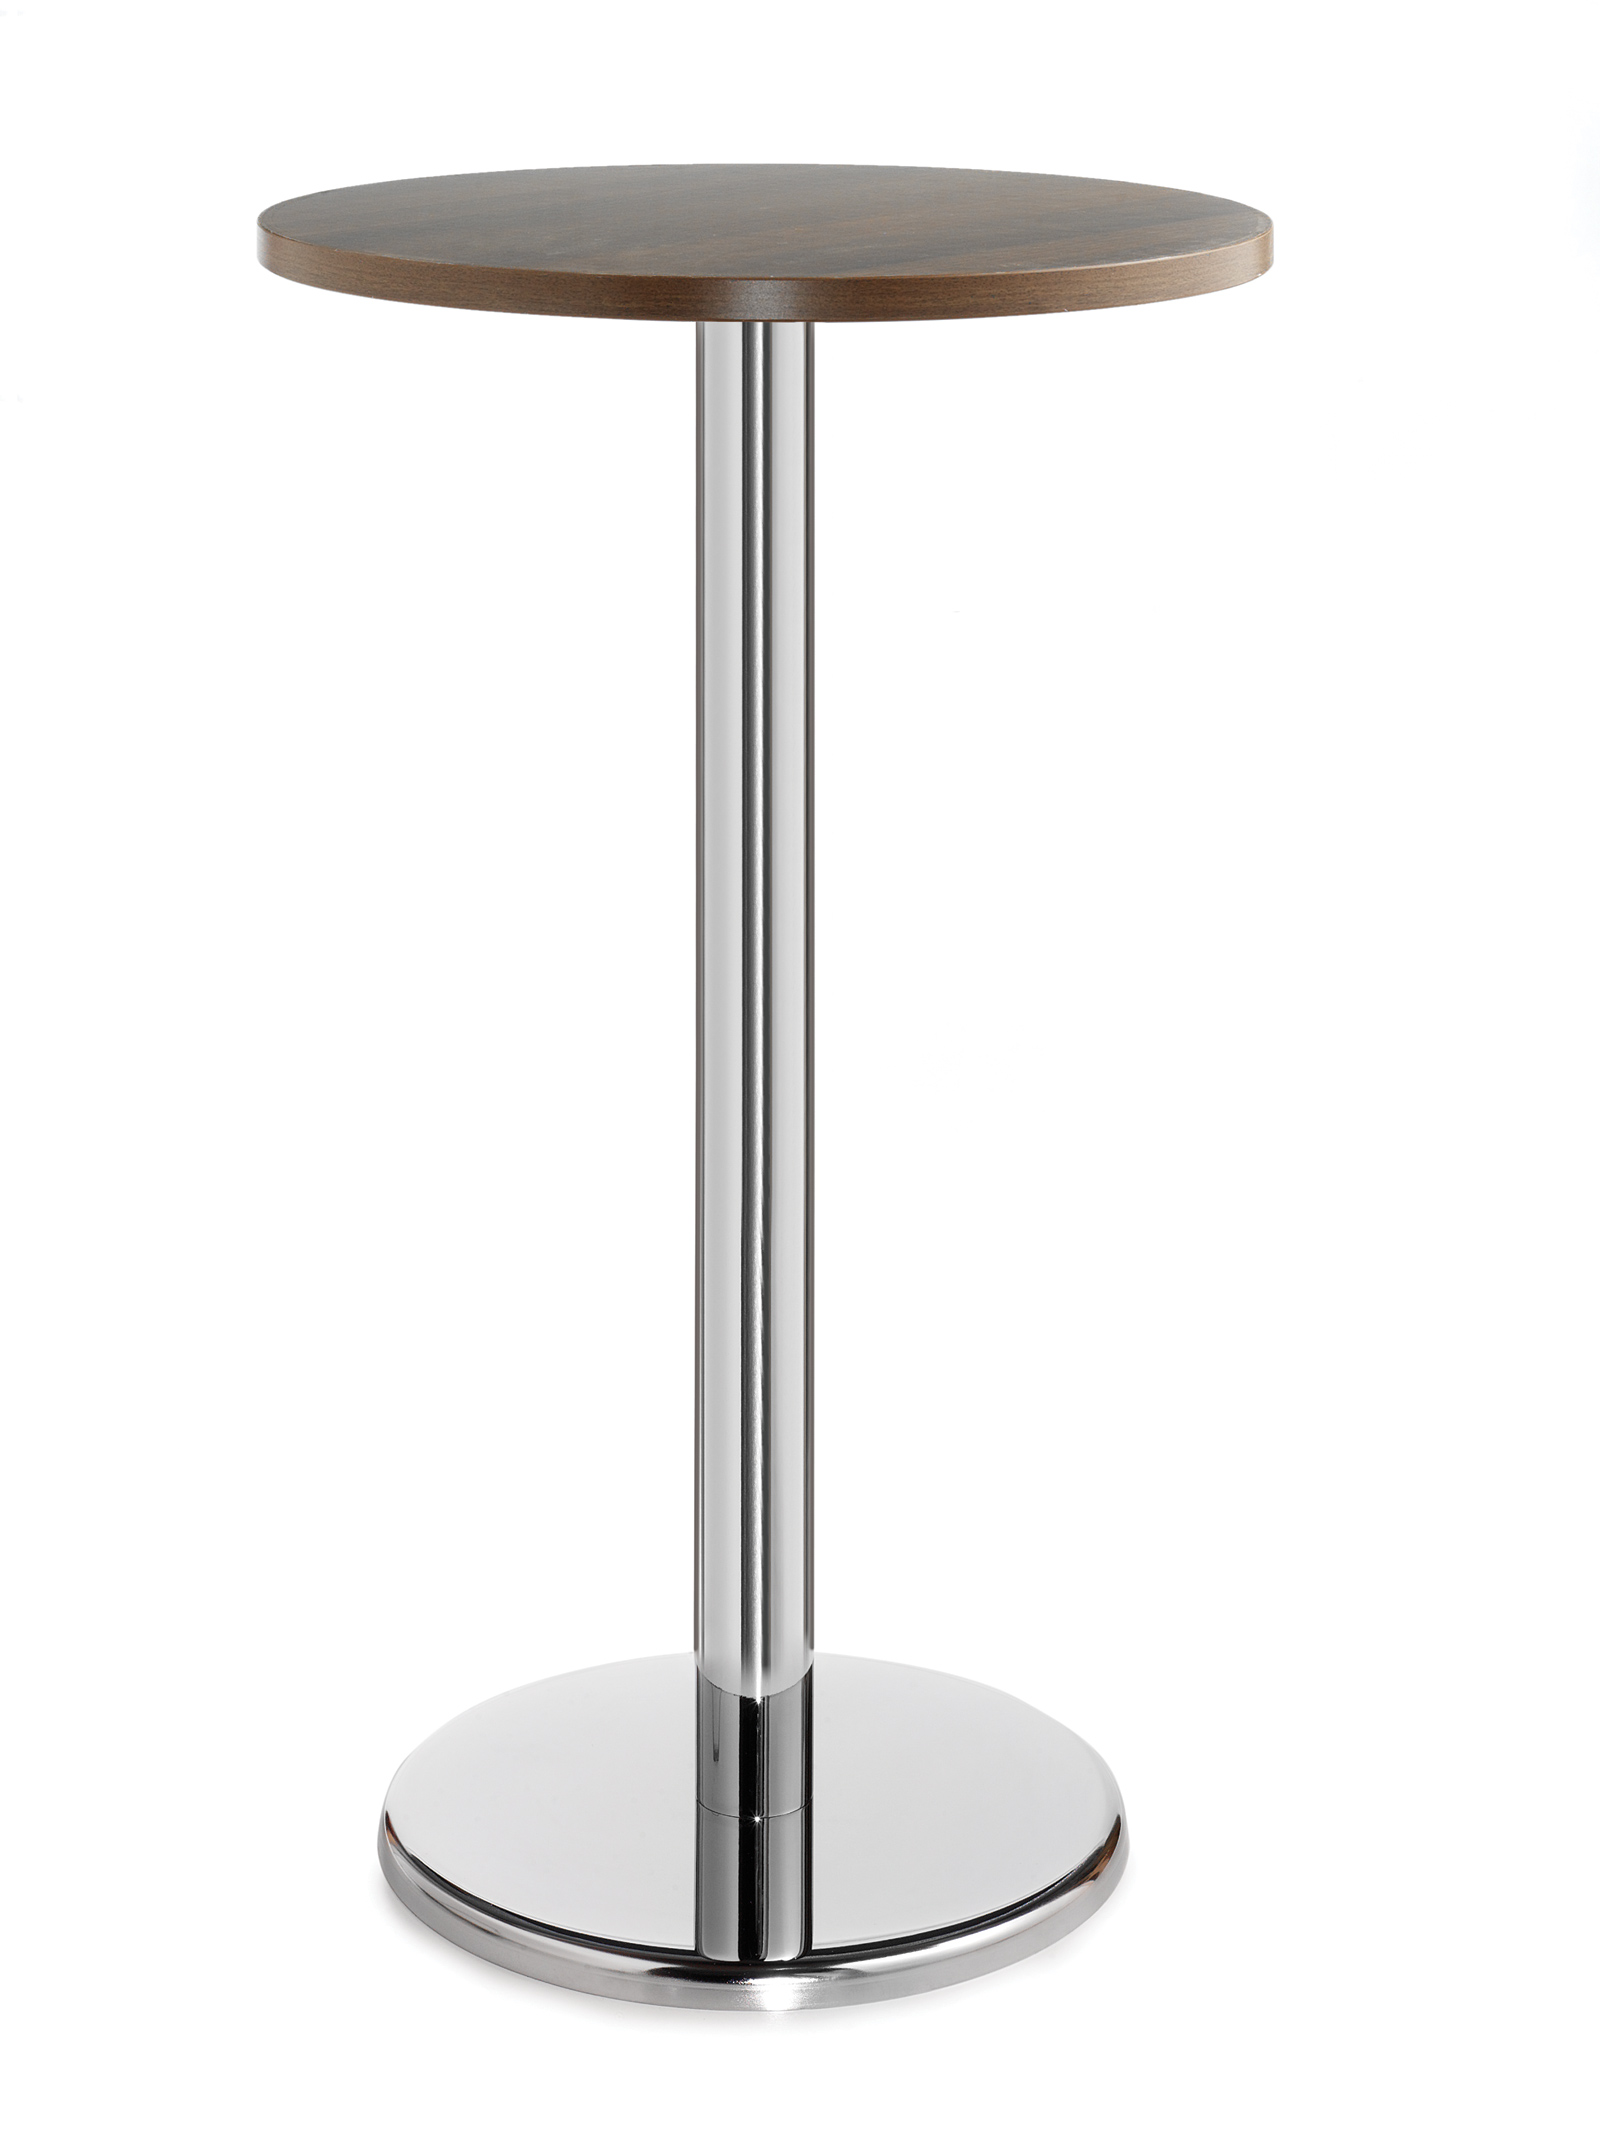 Pisa circular poseur table with round chrome base 600mm - walnut